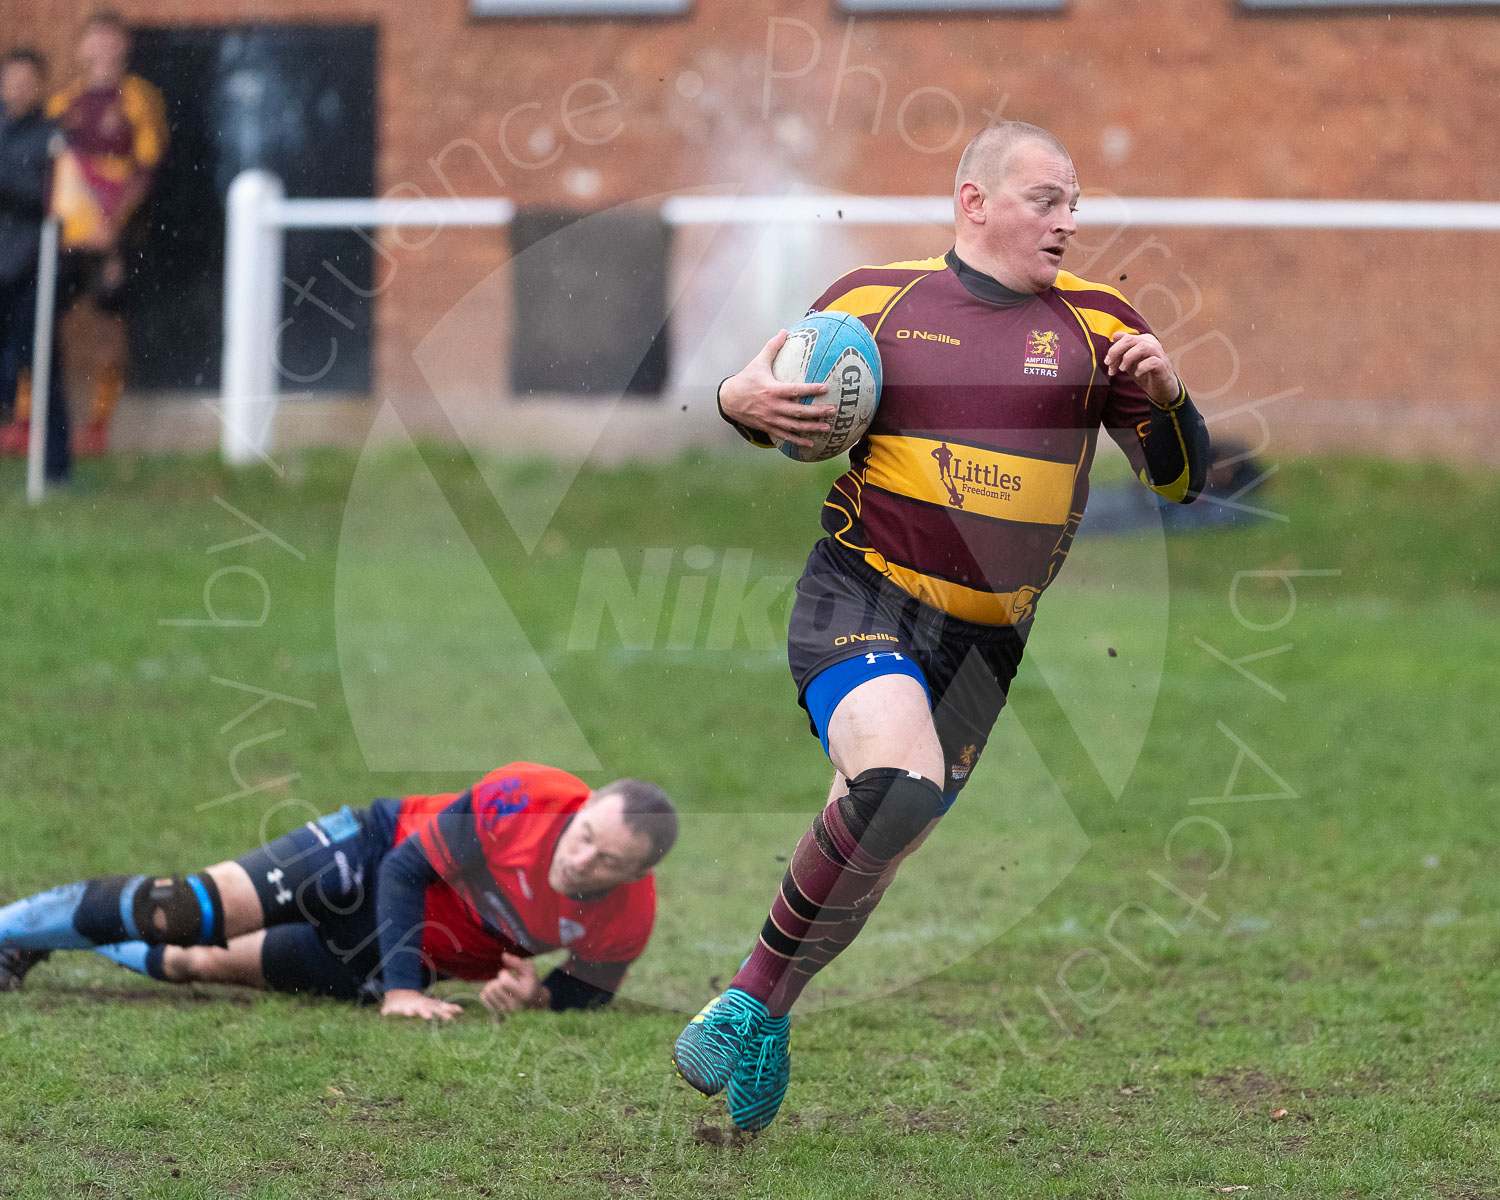 20181027 Amp Extras vs St Neots 2nd XV #2641